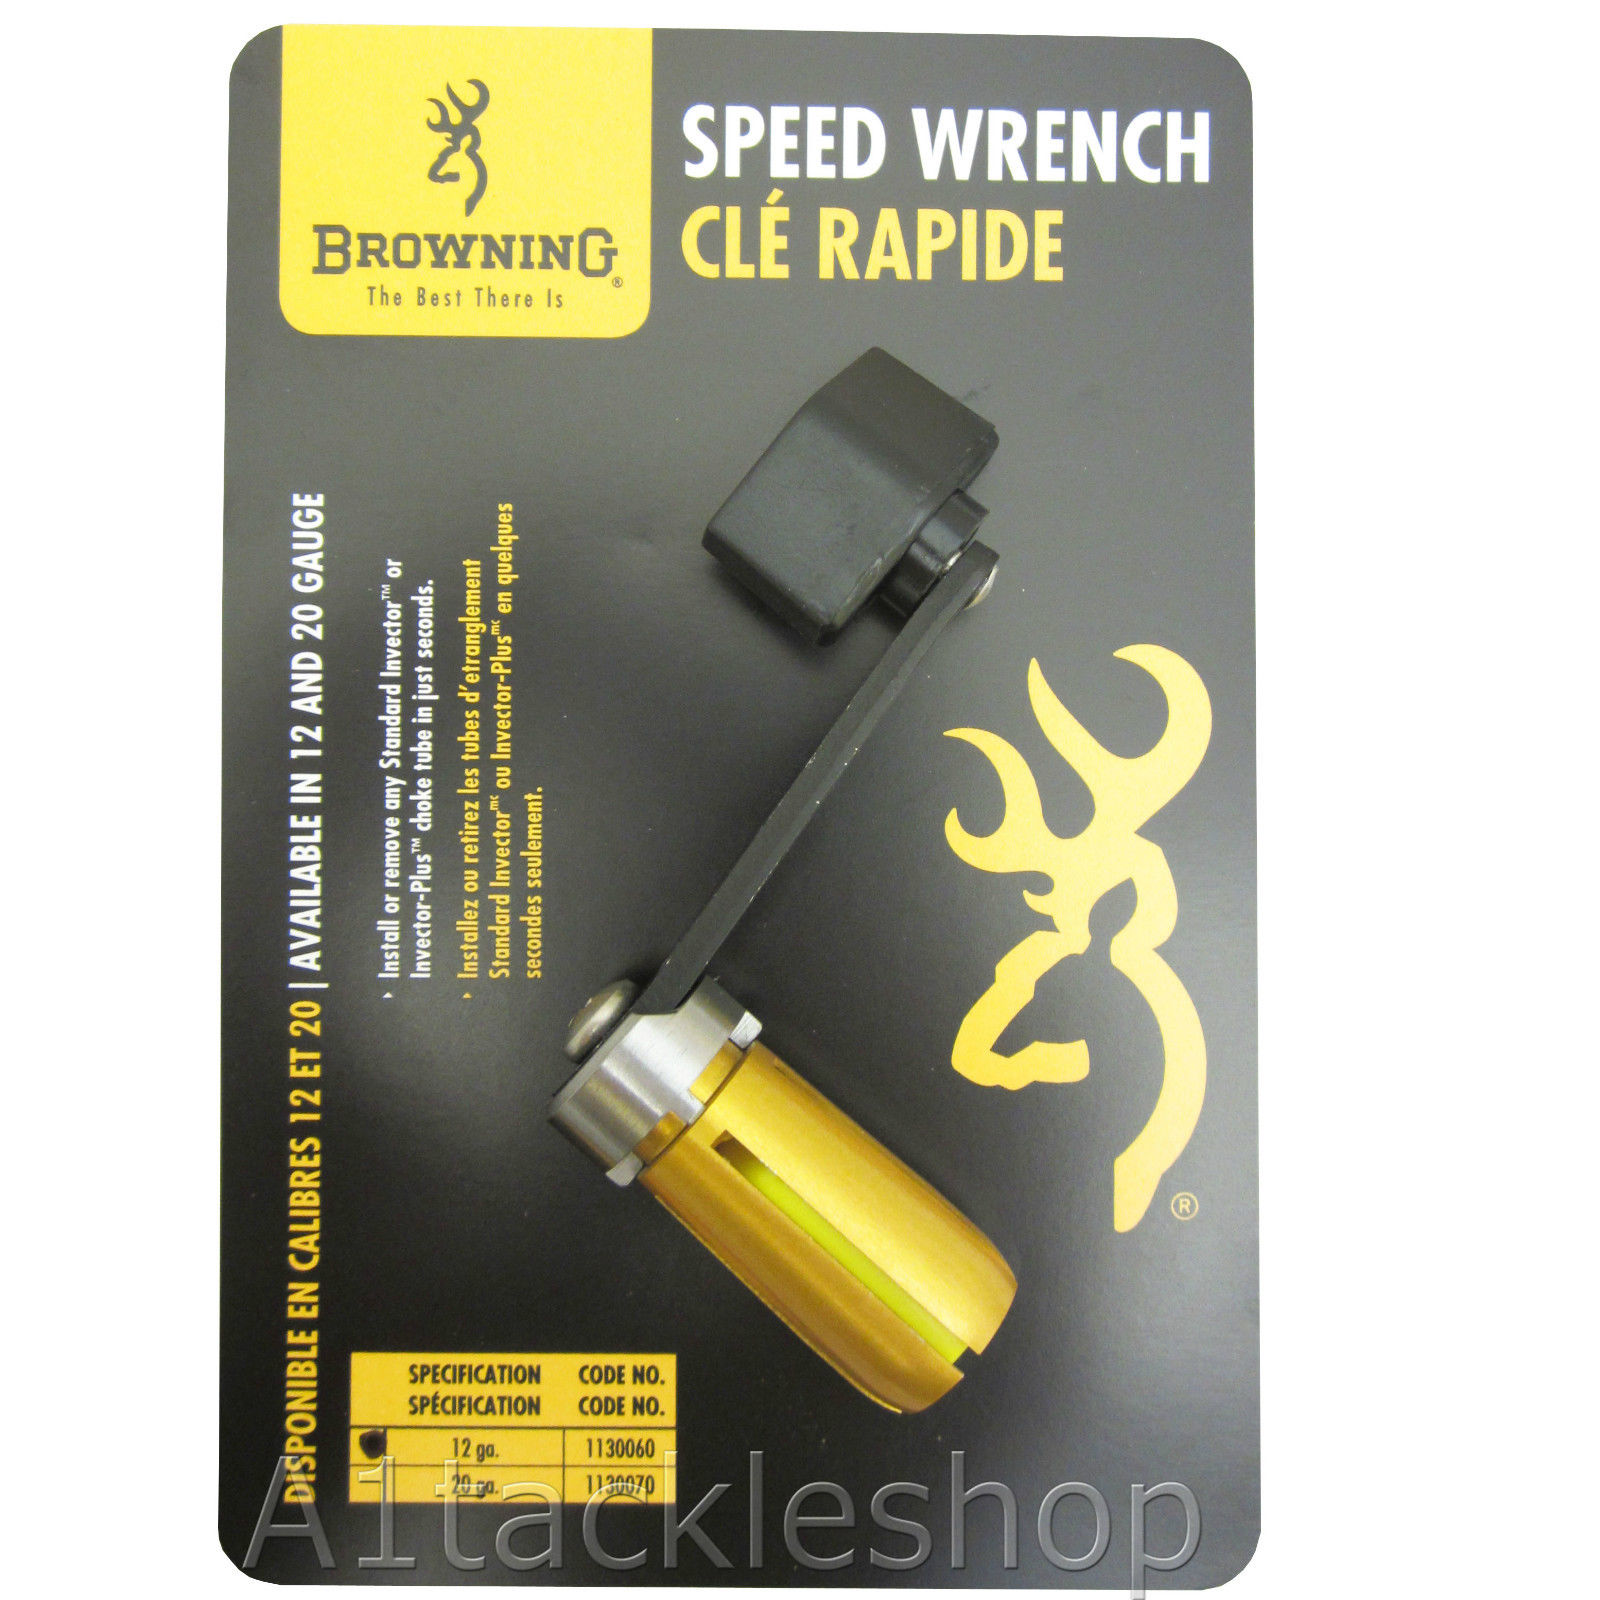 Browning & Miroku Shotgun Speed Wrench Choke Key